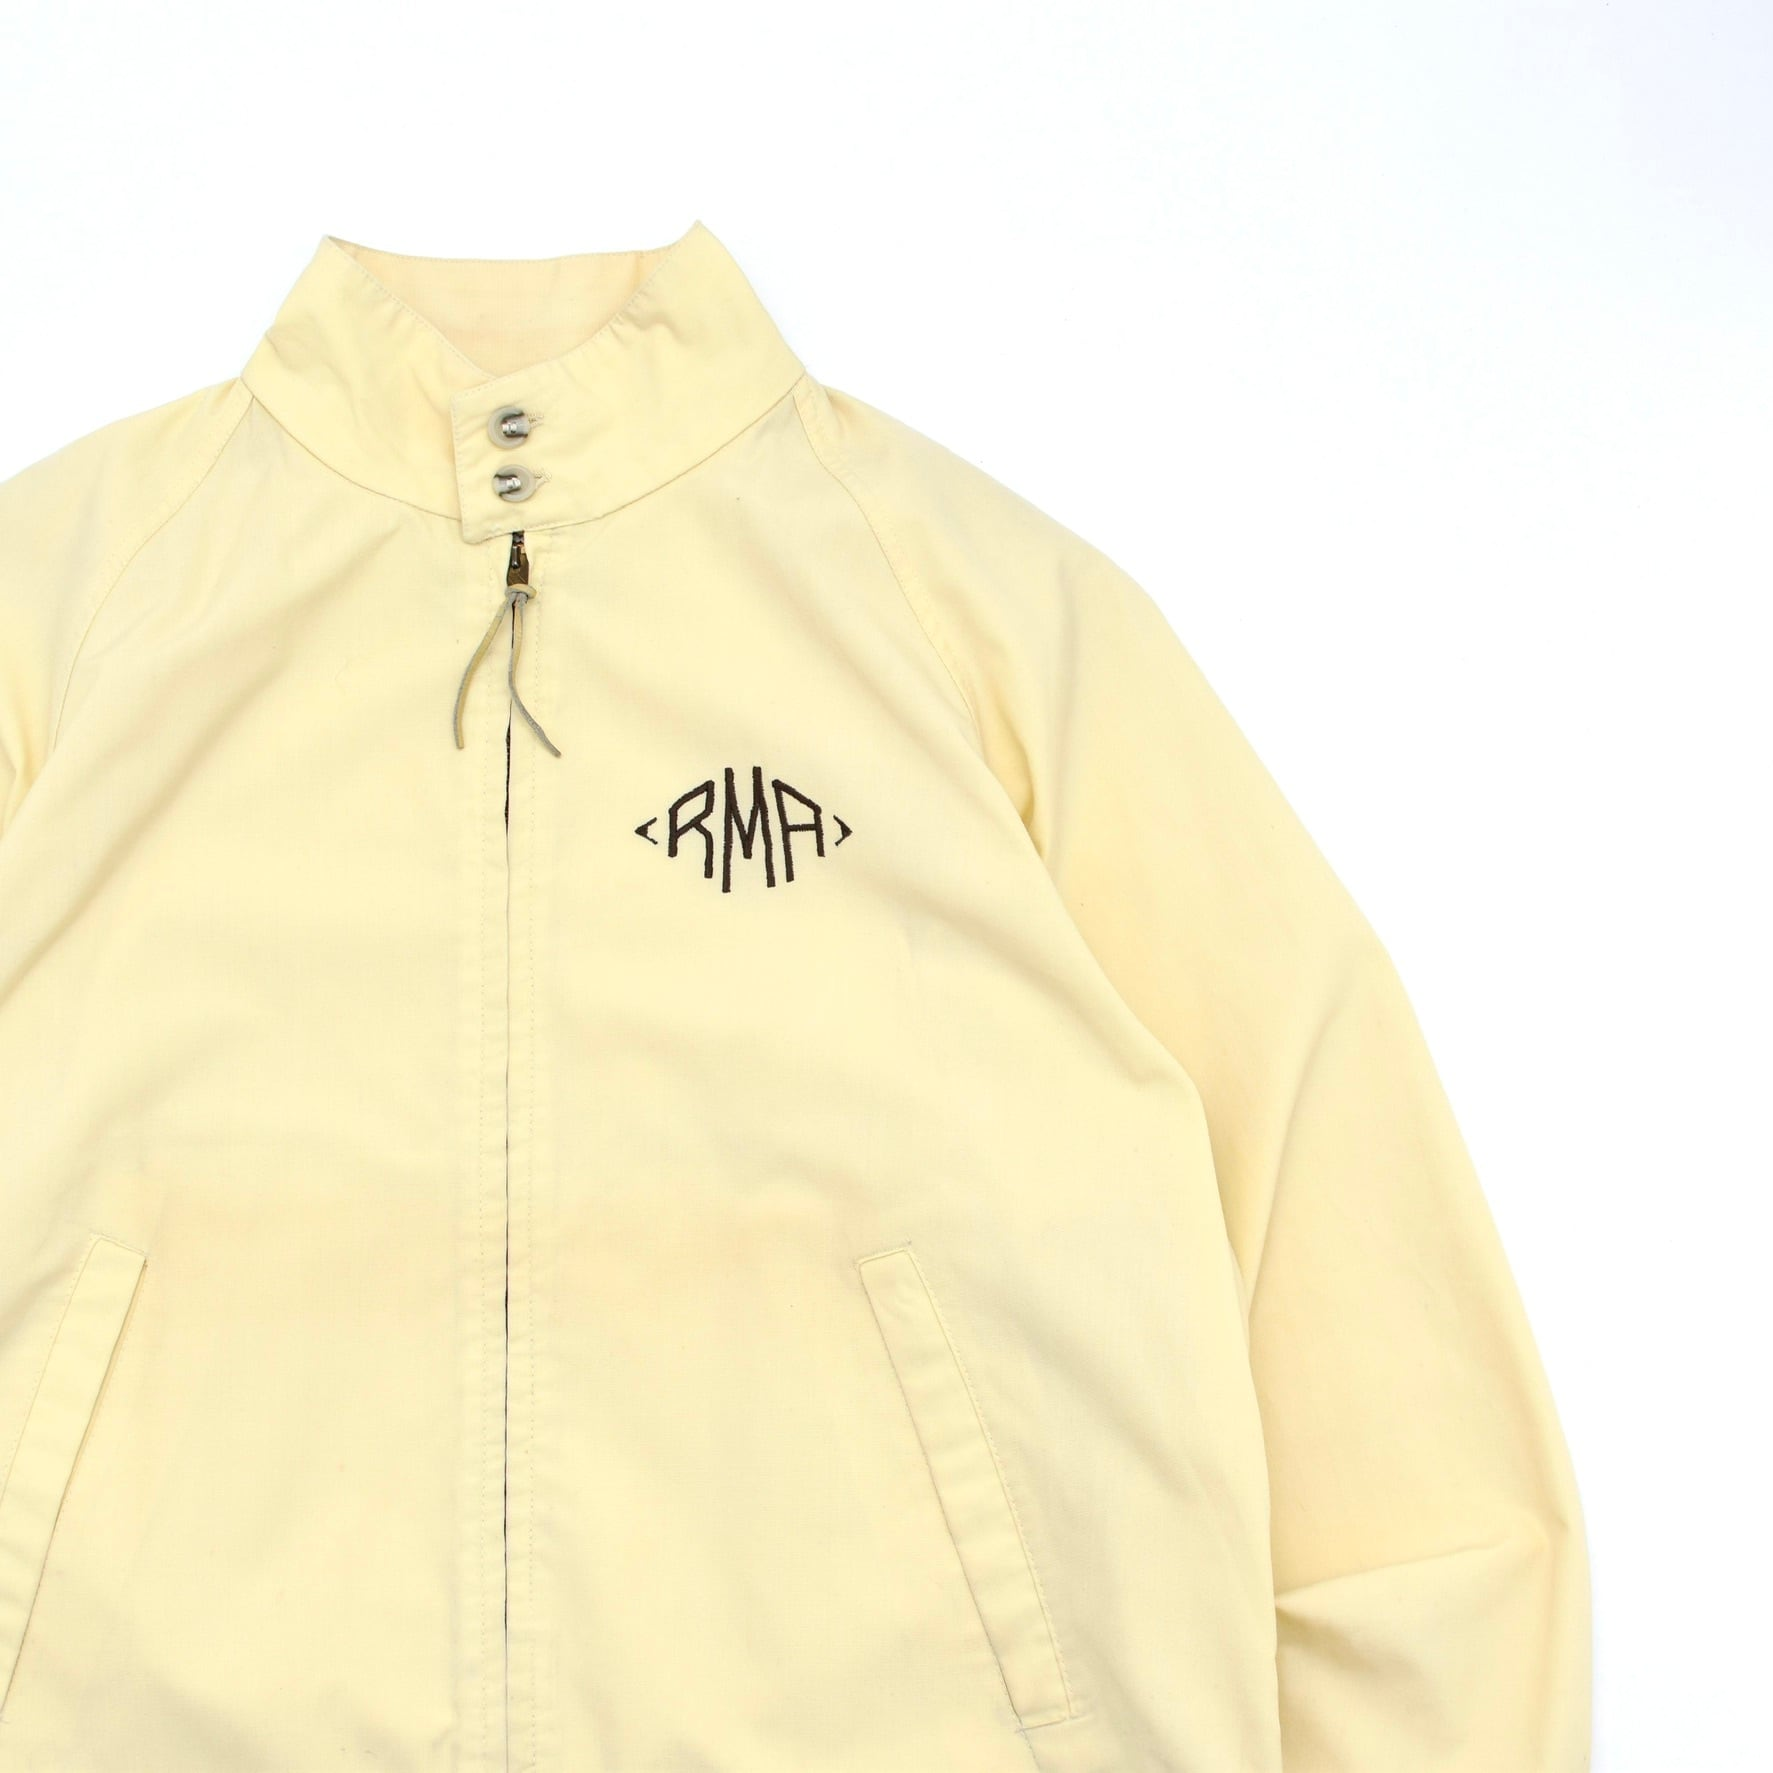 60's English Squire drizzler jacket